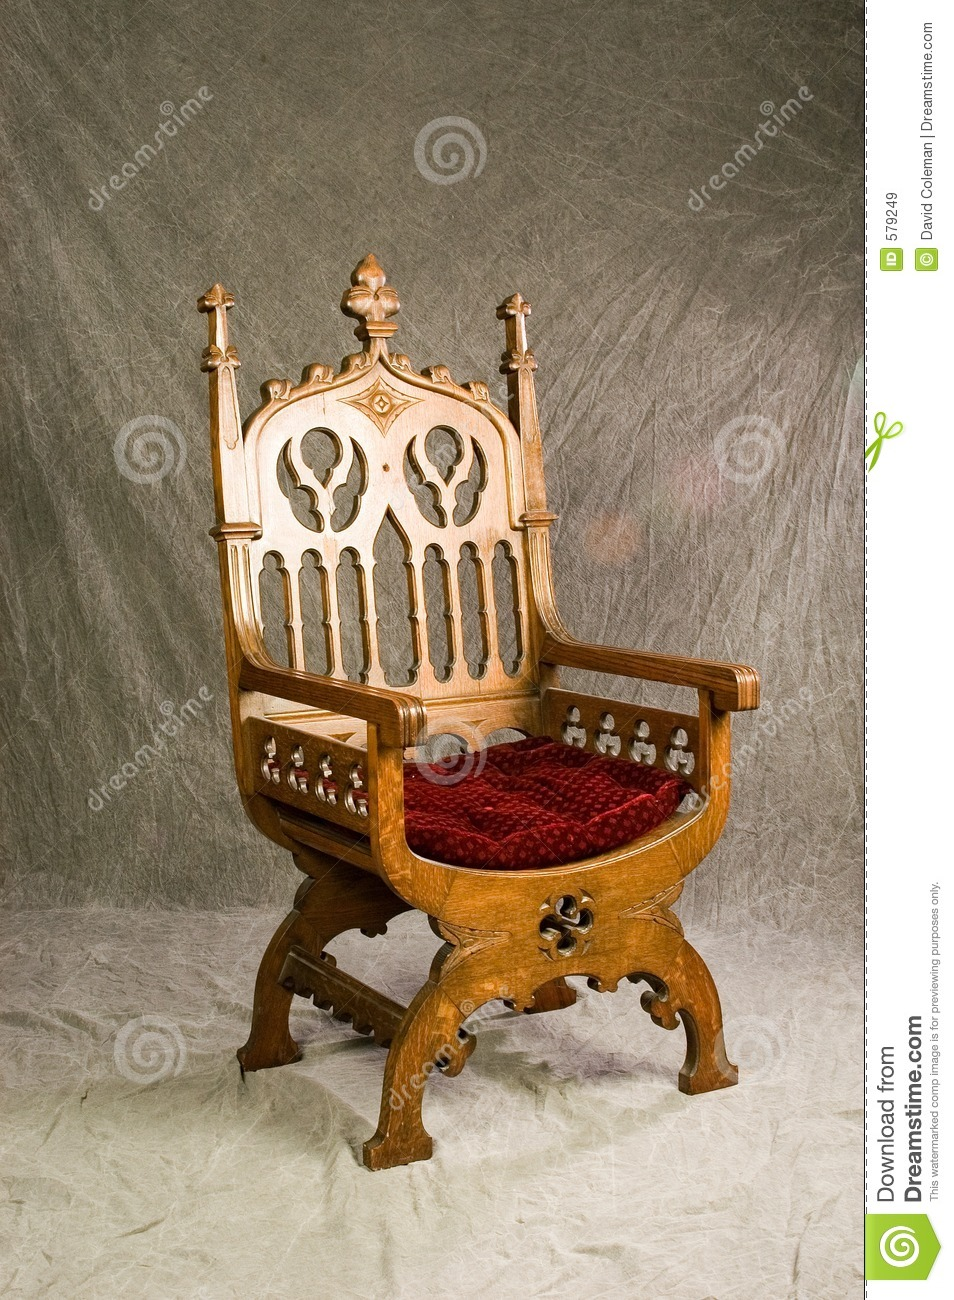 Top 10 Chairs